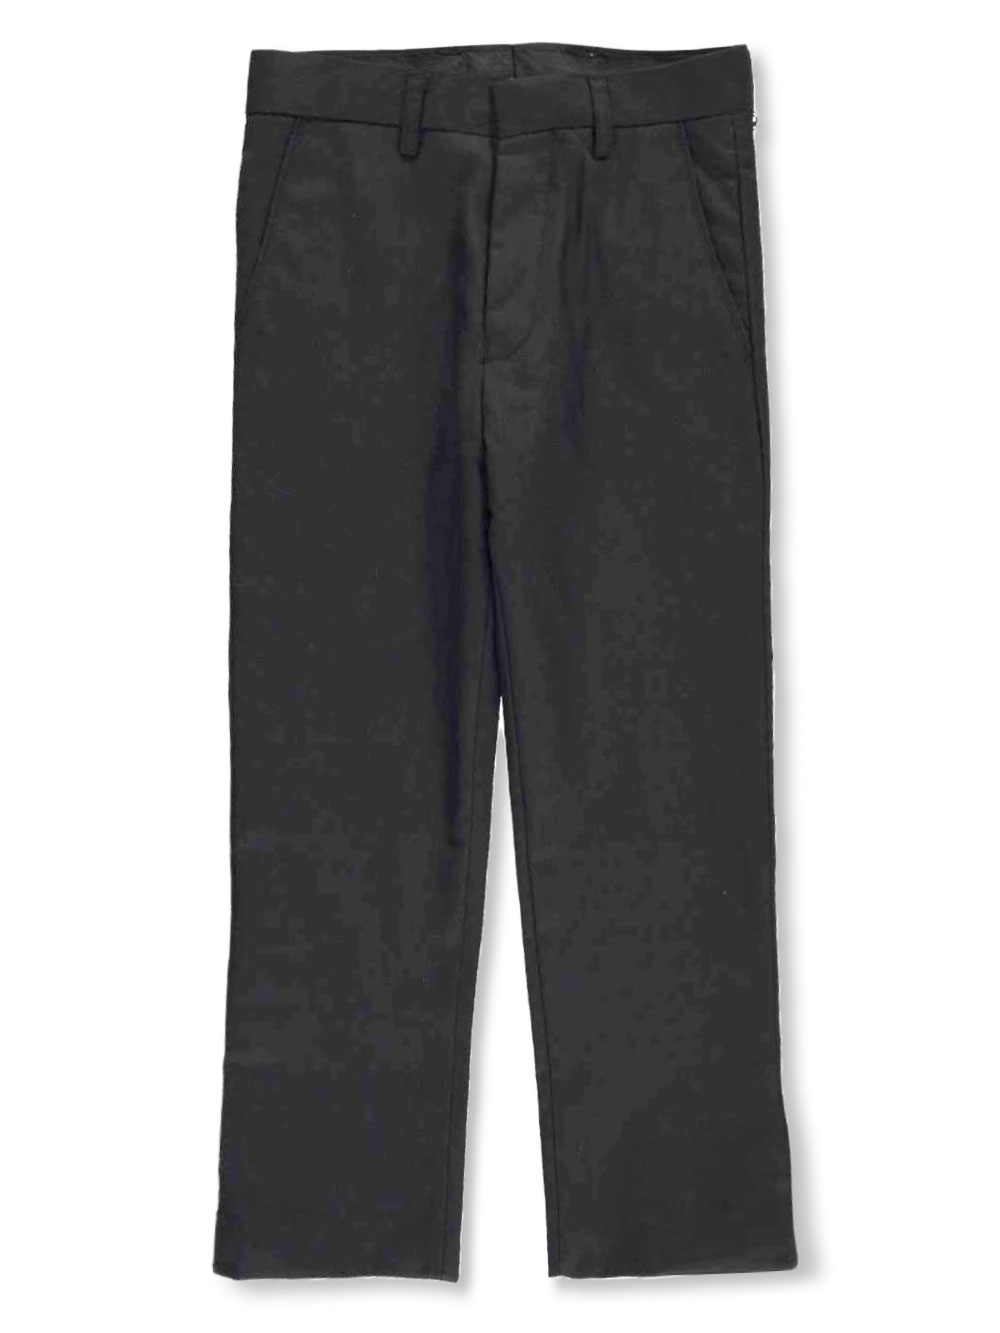 Boys Navy Dress Pants